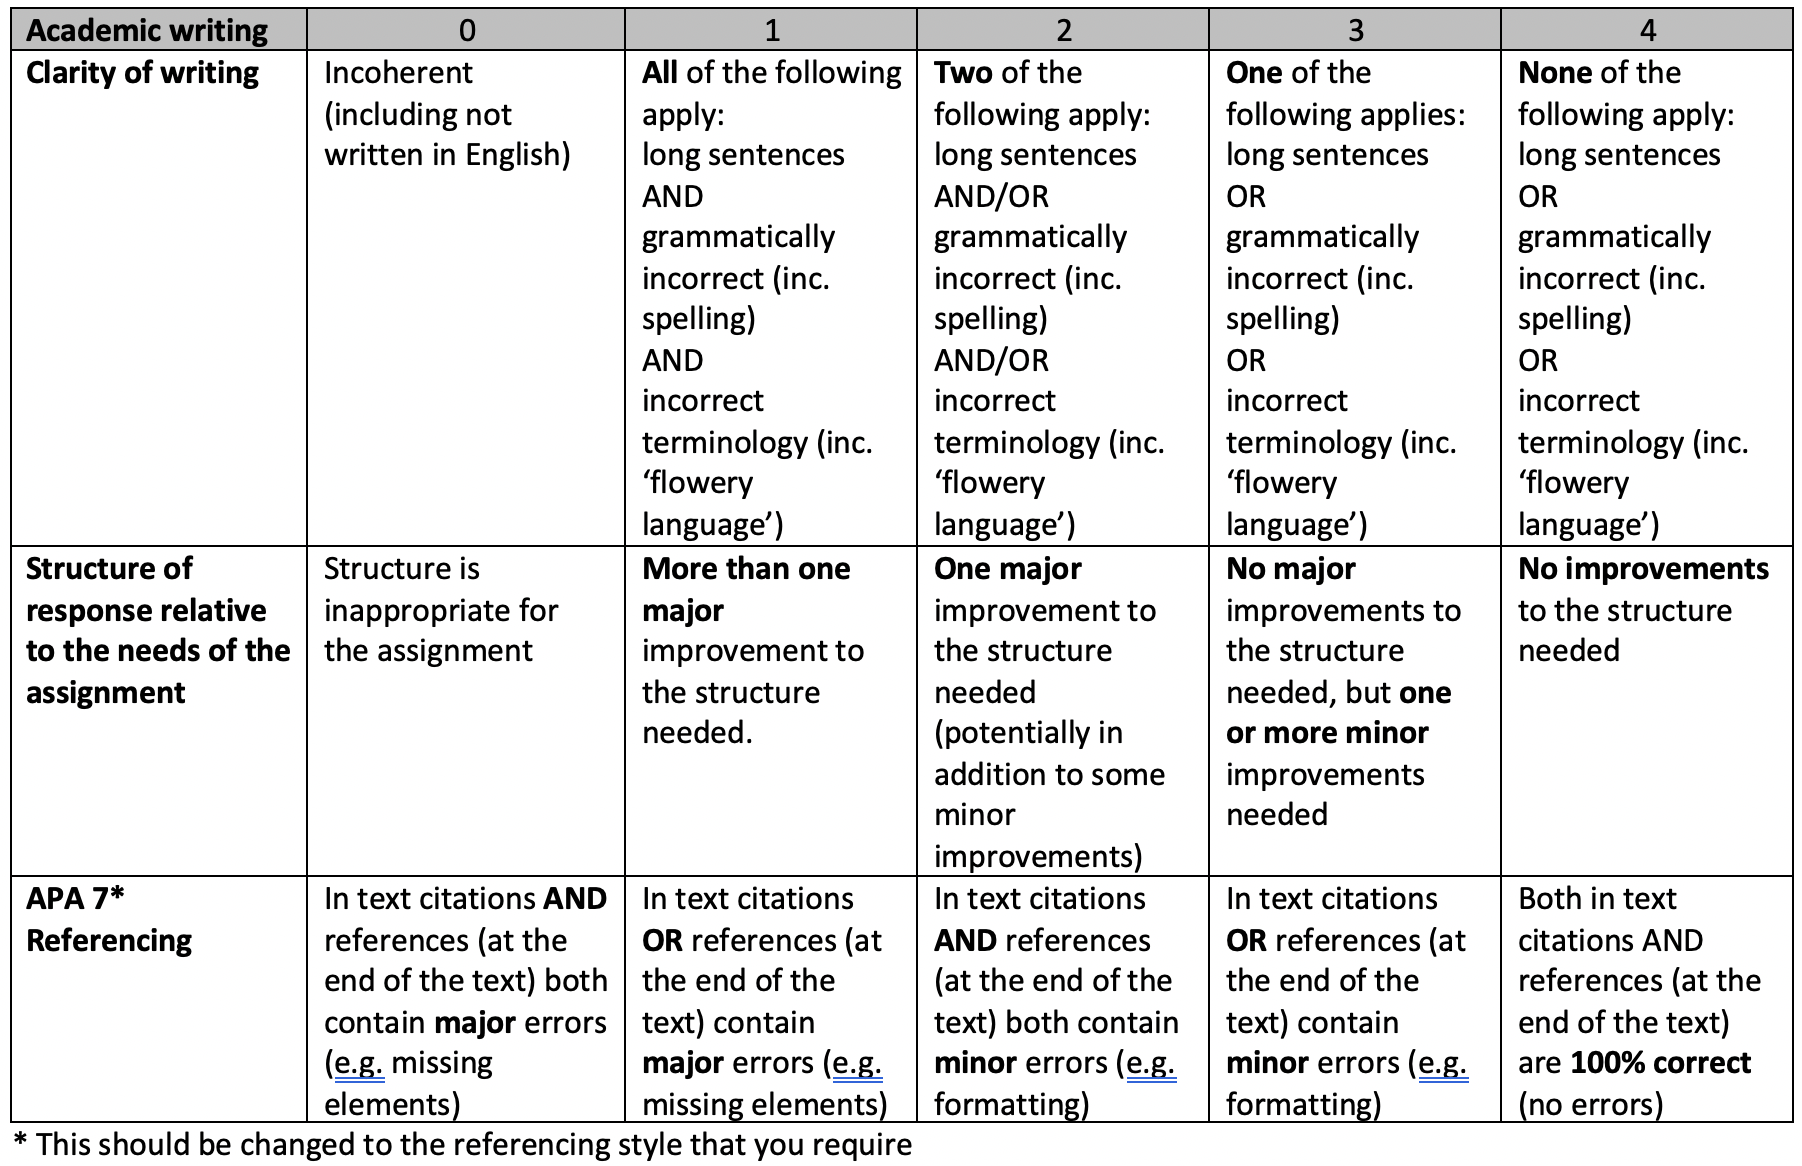 Rubric for Academic writing